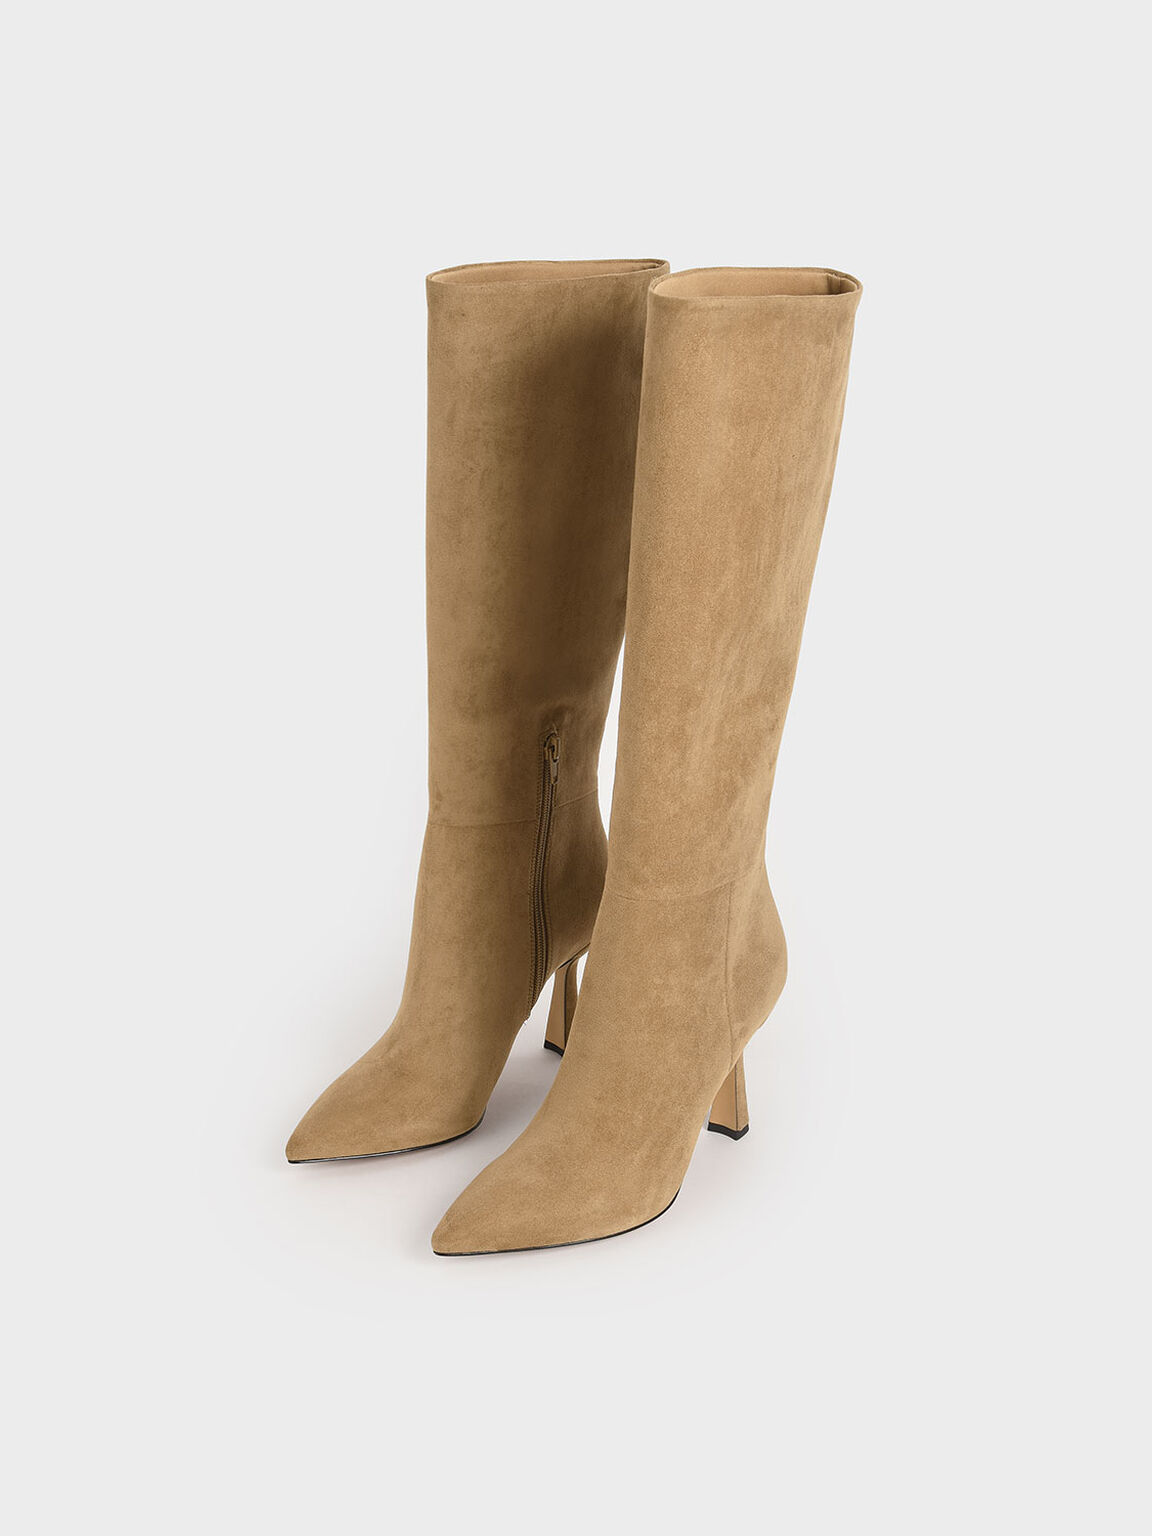 Textured Sculptural Heel Knee High Boots, Camel, hi-res